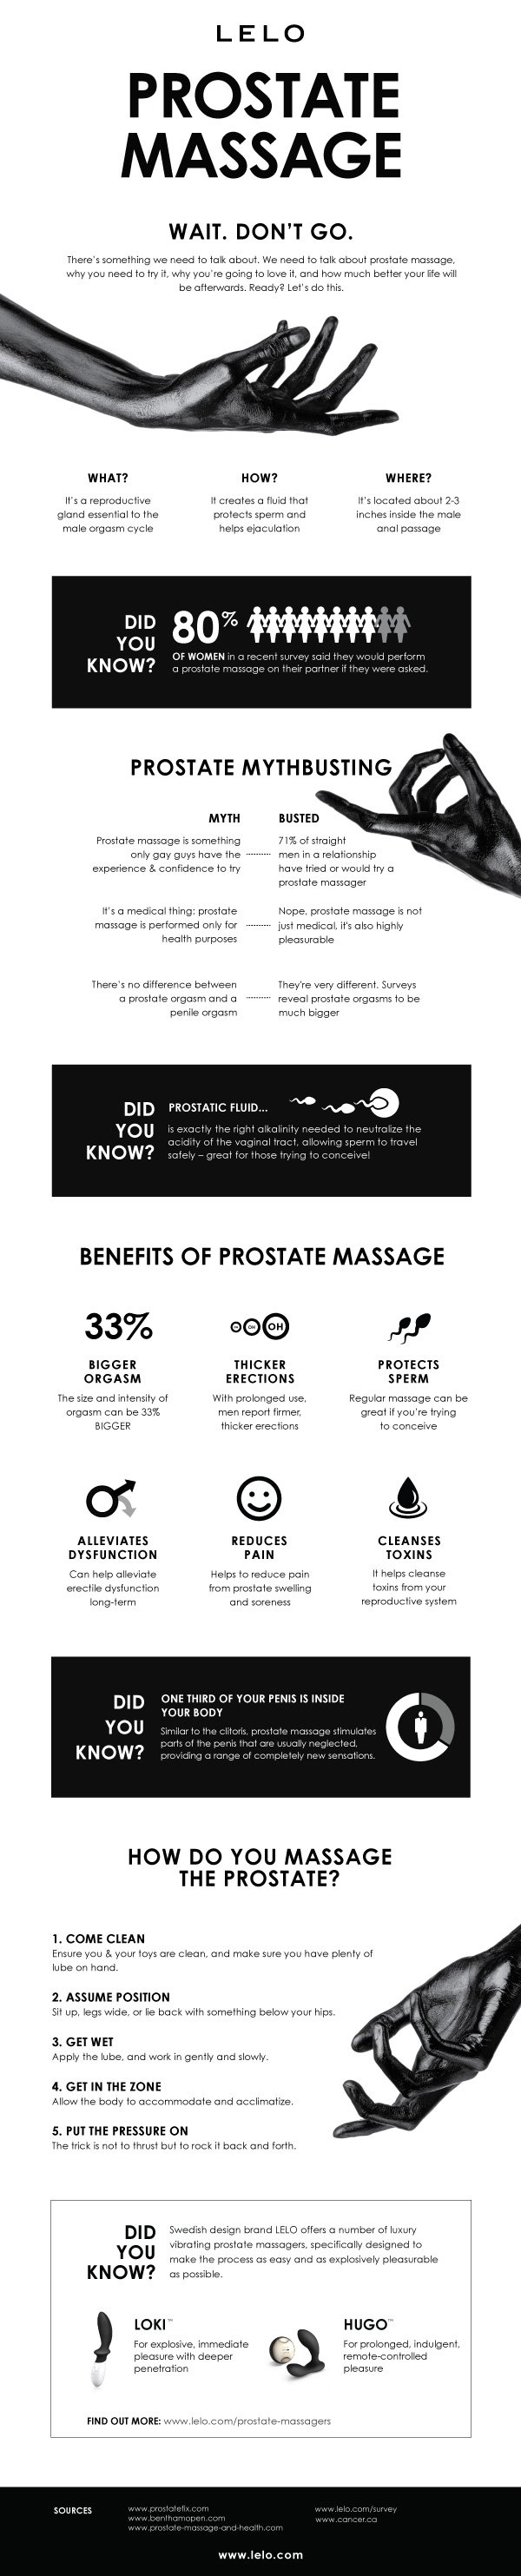 Prostate_Infographic_20150825_7-53pm_2